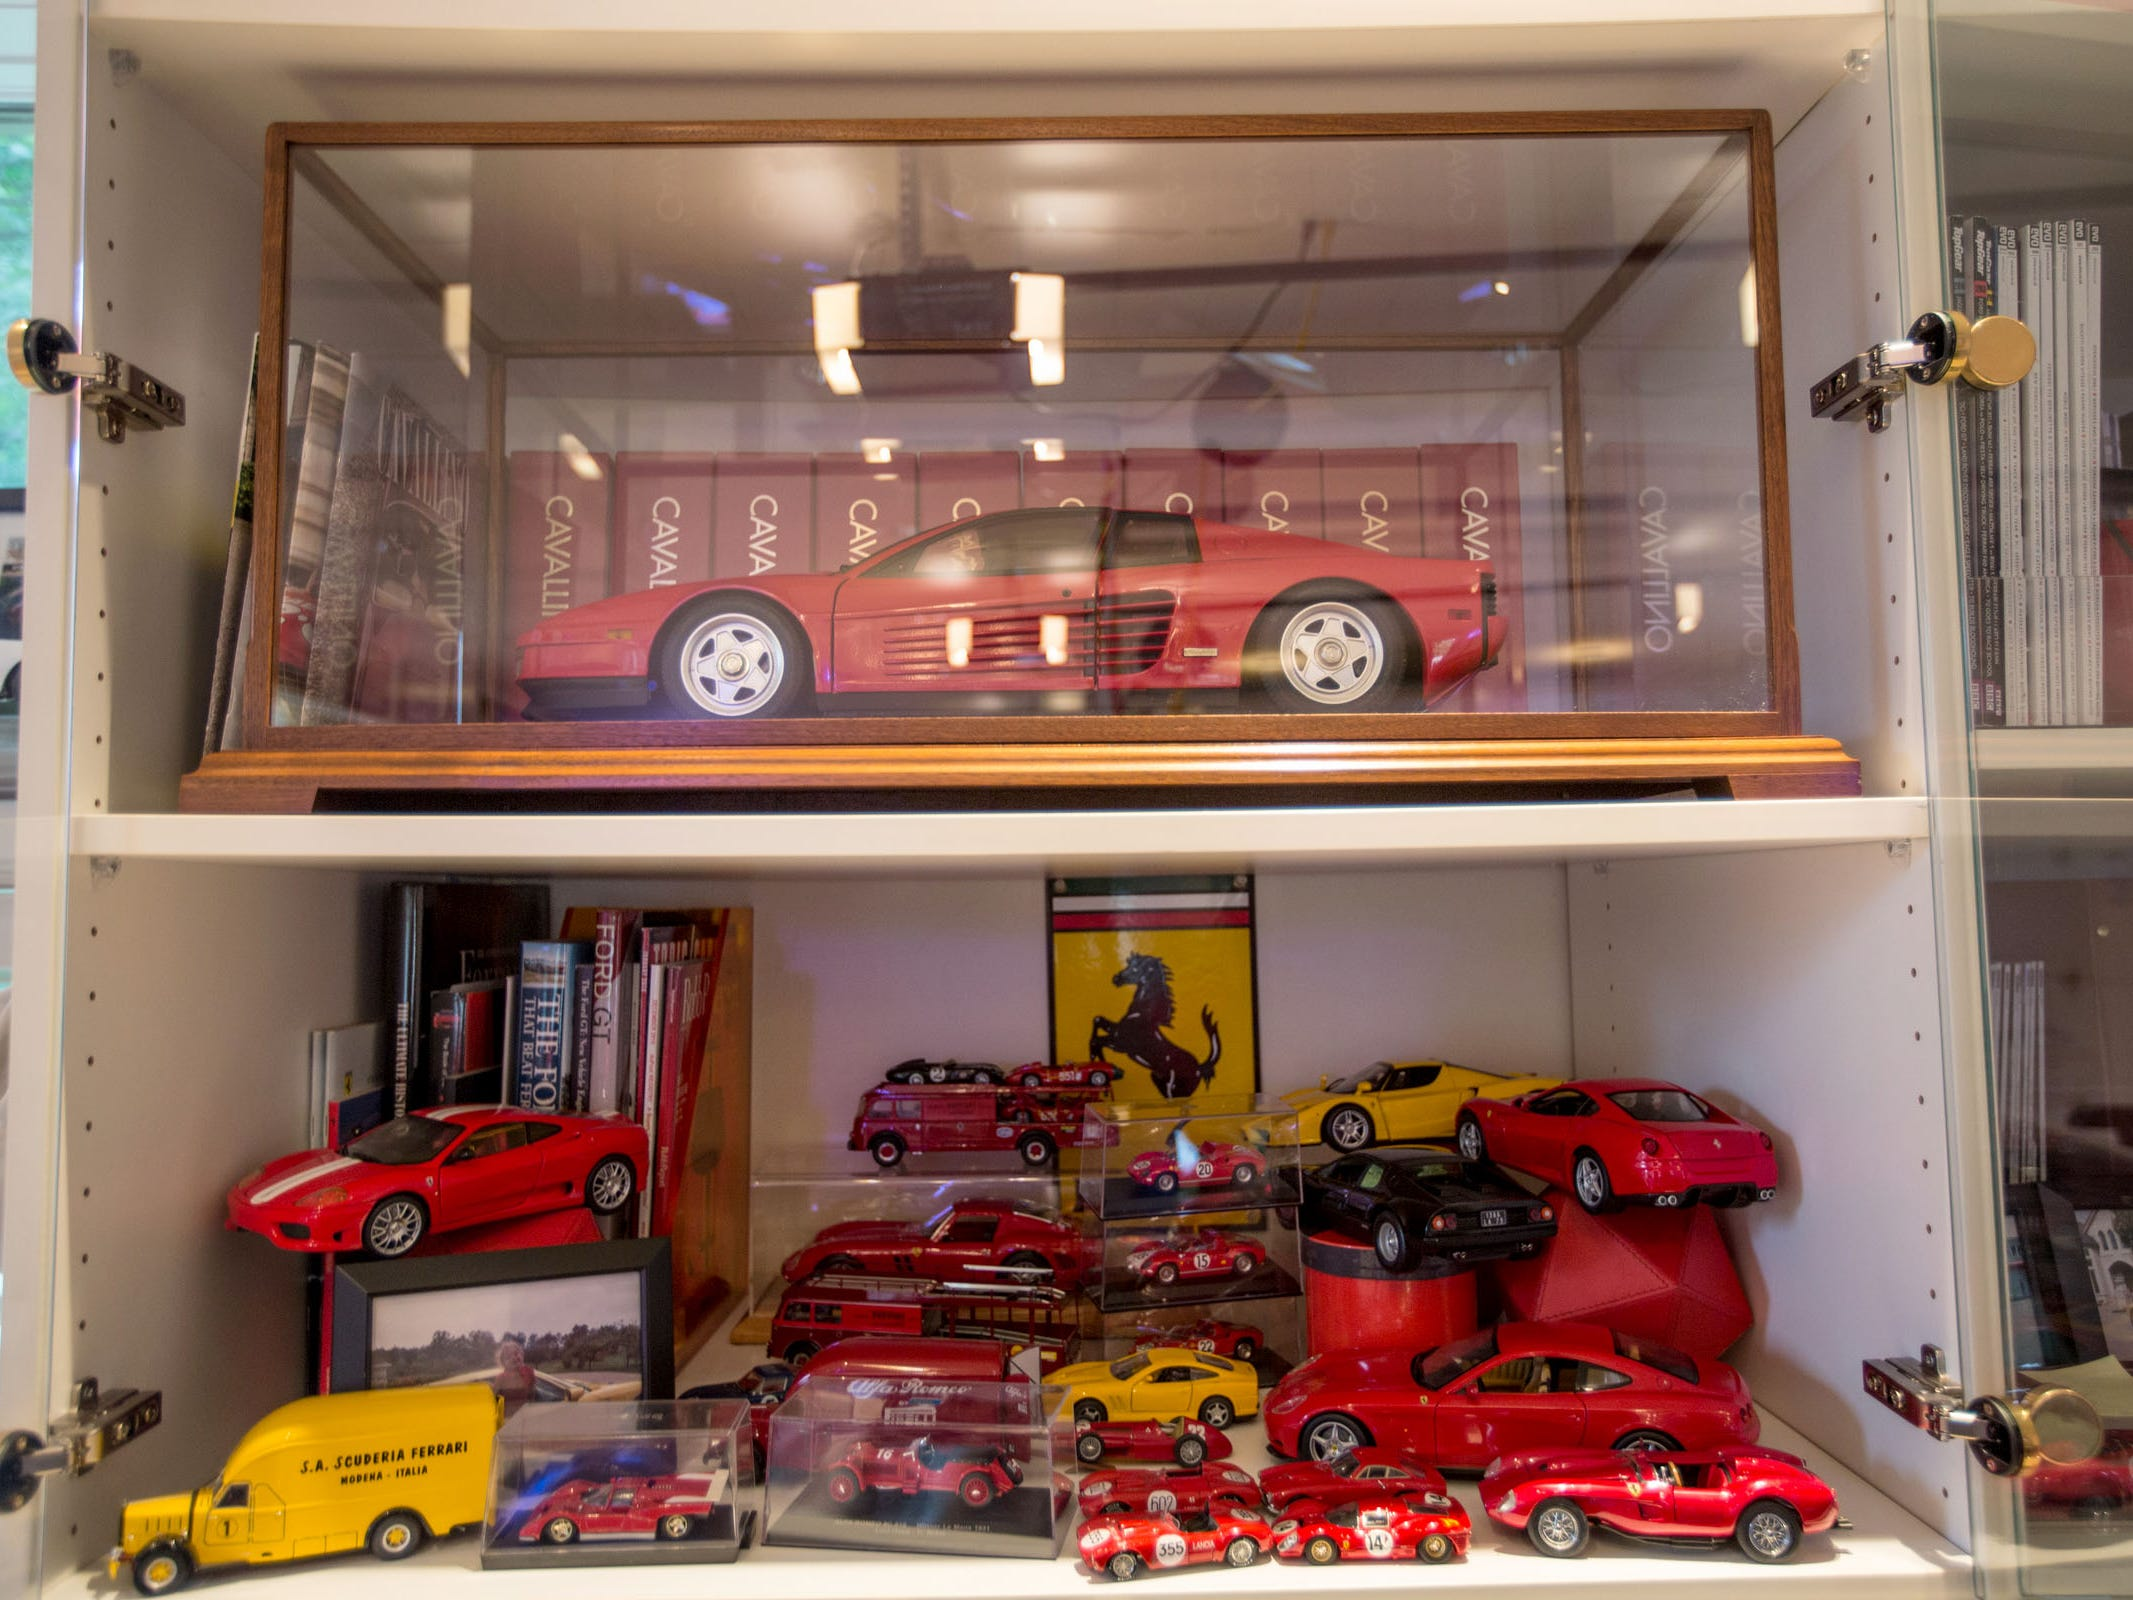 Part of the model car collection on display in a garage.